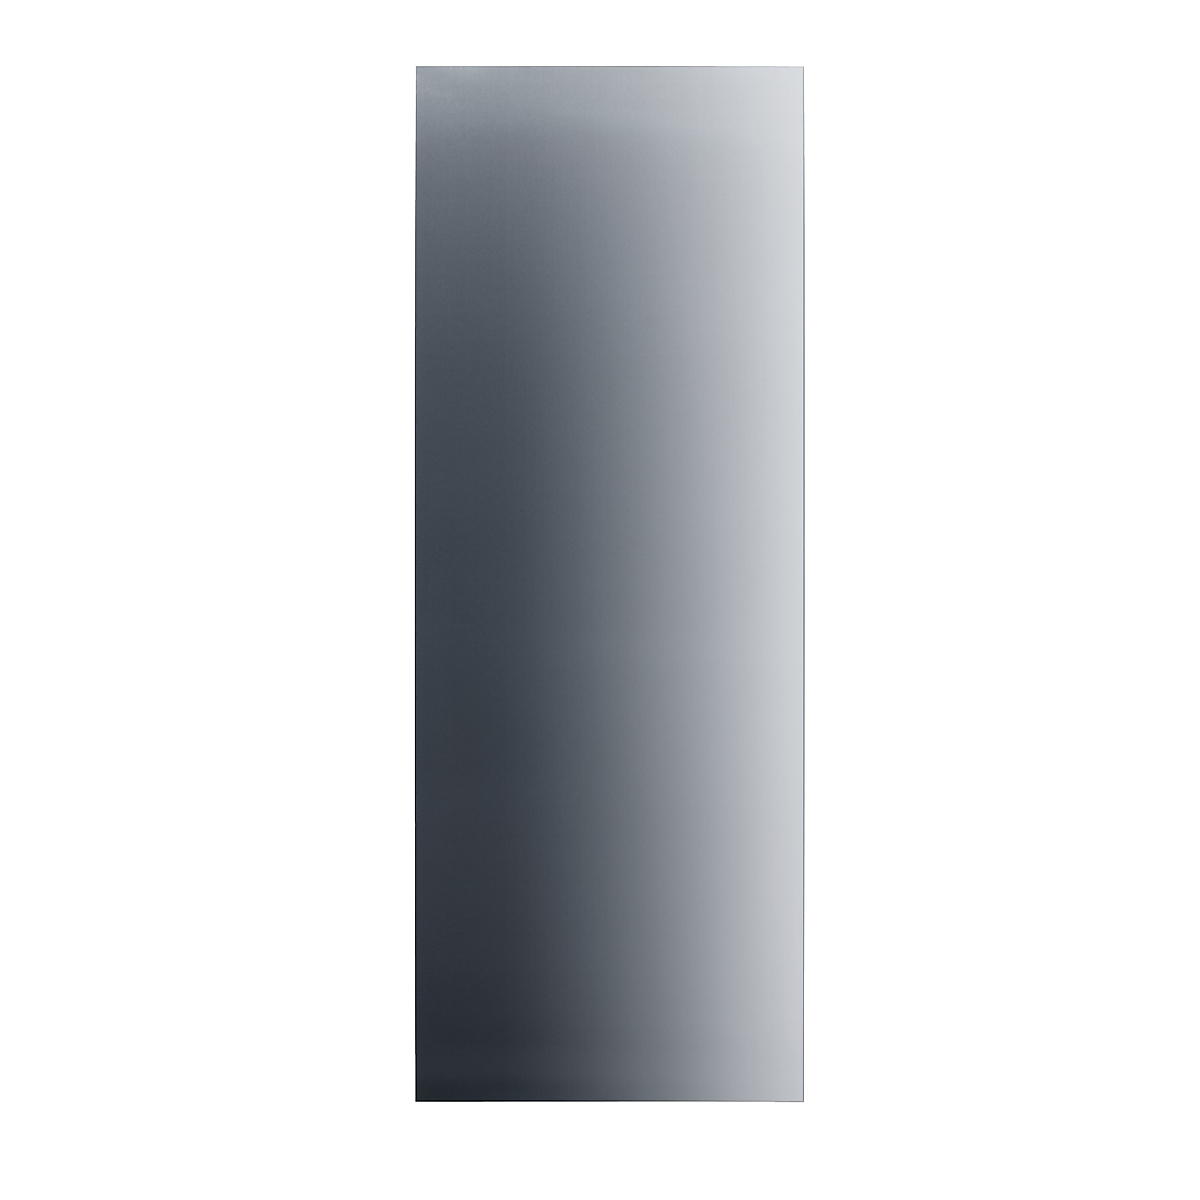 Stainless steel frontfor stylish integration of MasterCool™ freezers in your kitchen.